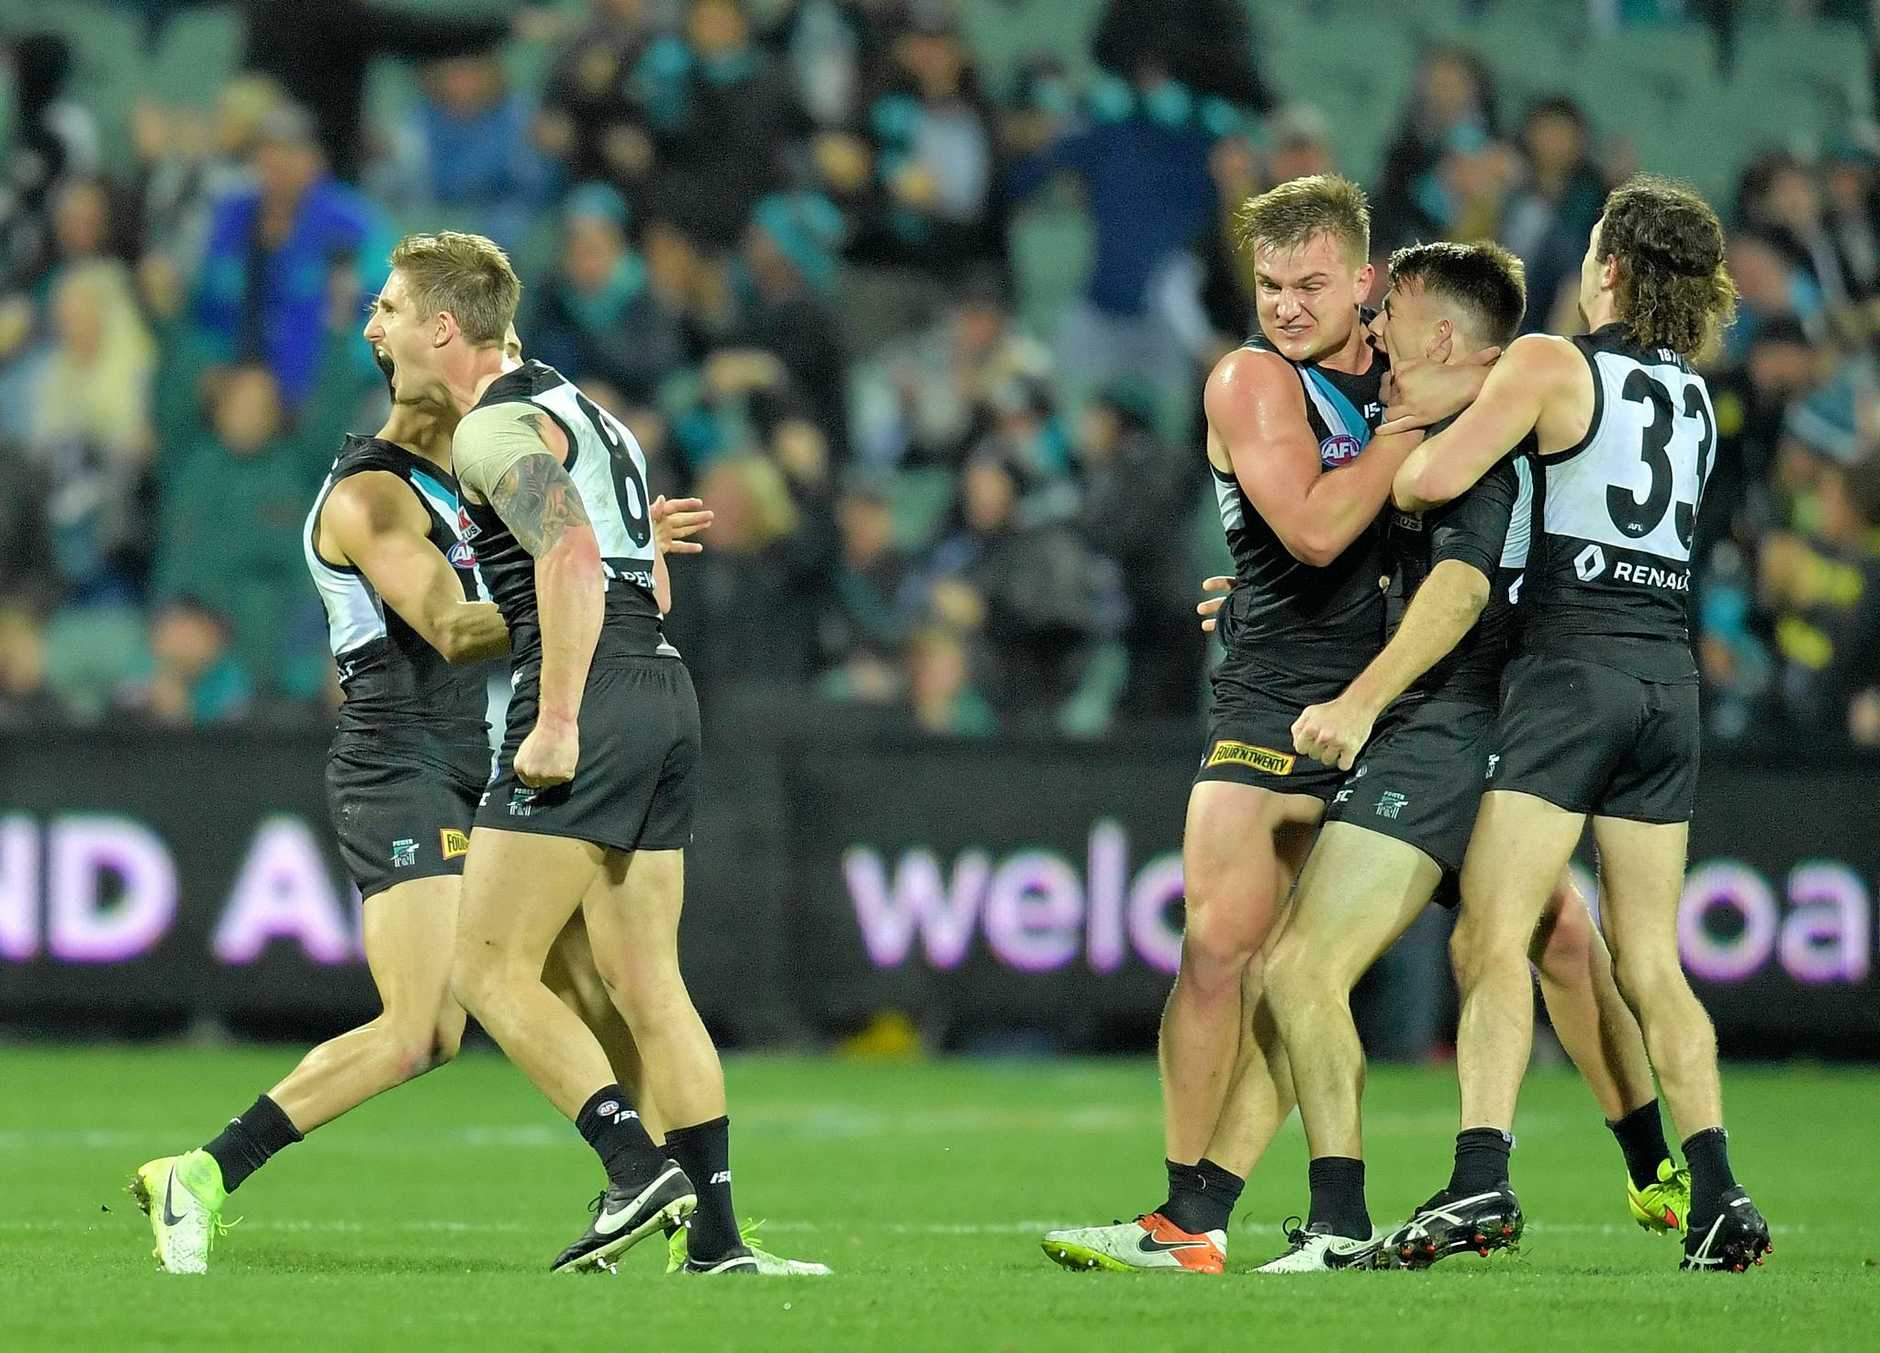 Robbie Gray of the Power (second right) celebrates with teammates after kicking the winning goal against St Kilda.